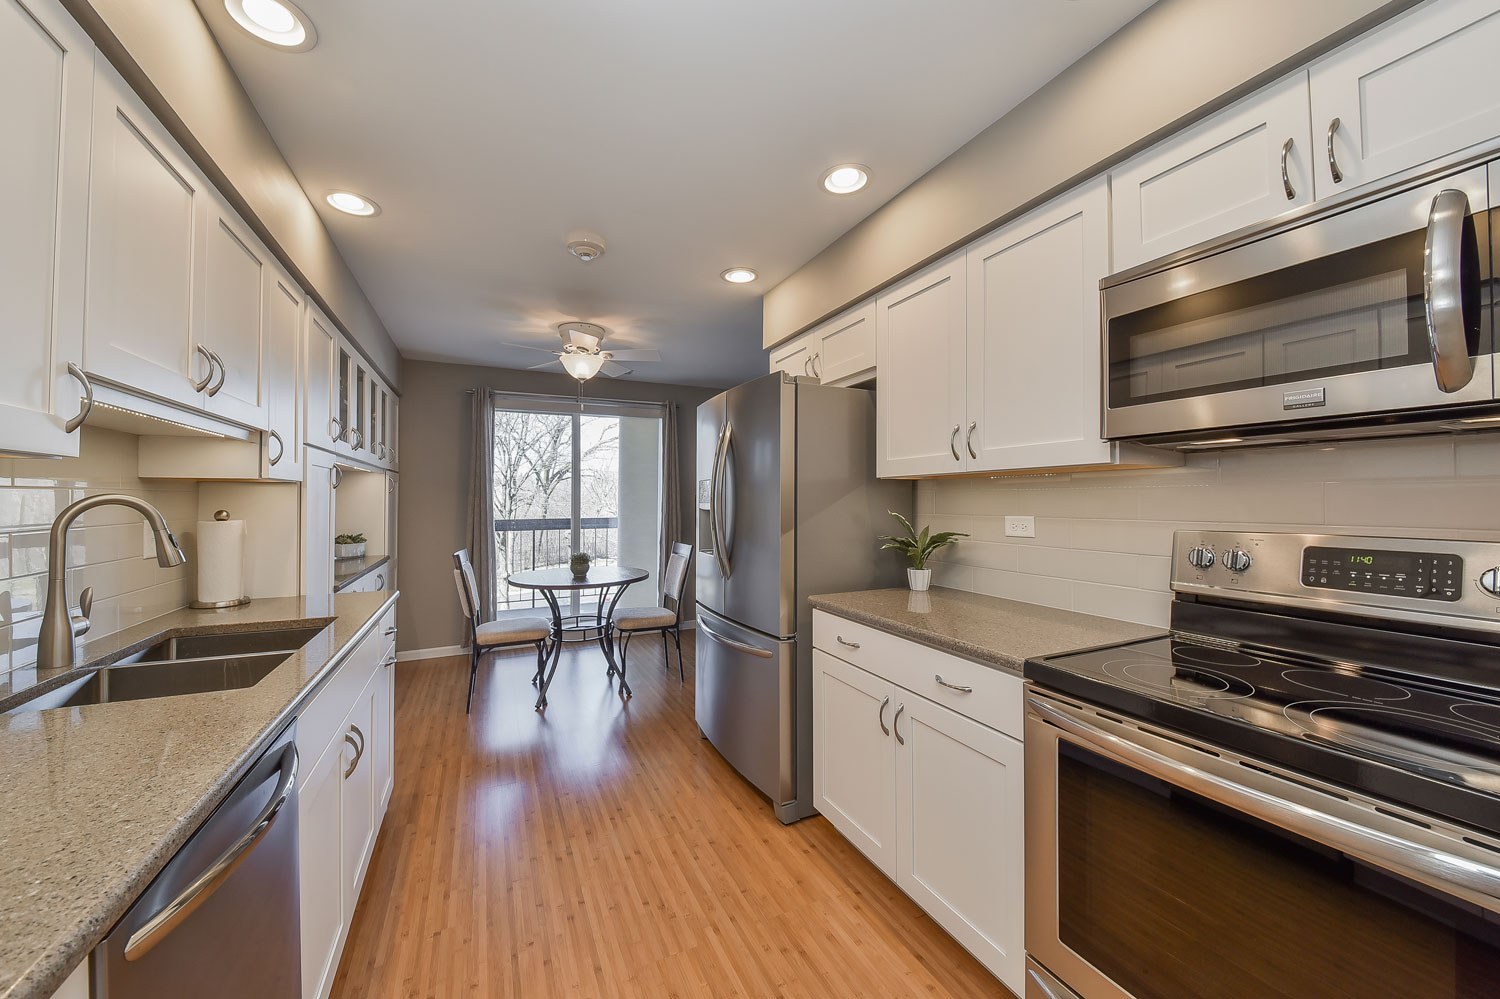 White Cabinets, Modern Clean Grey Paint, Subway Tile, Stainless Appliances - Sebring Services